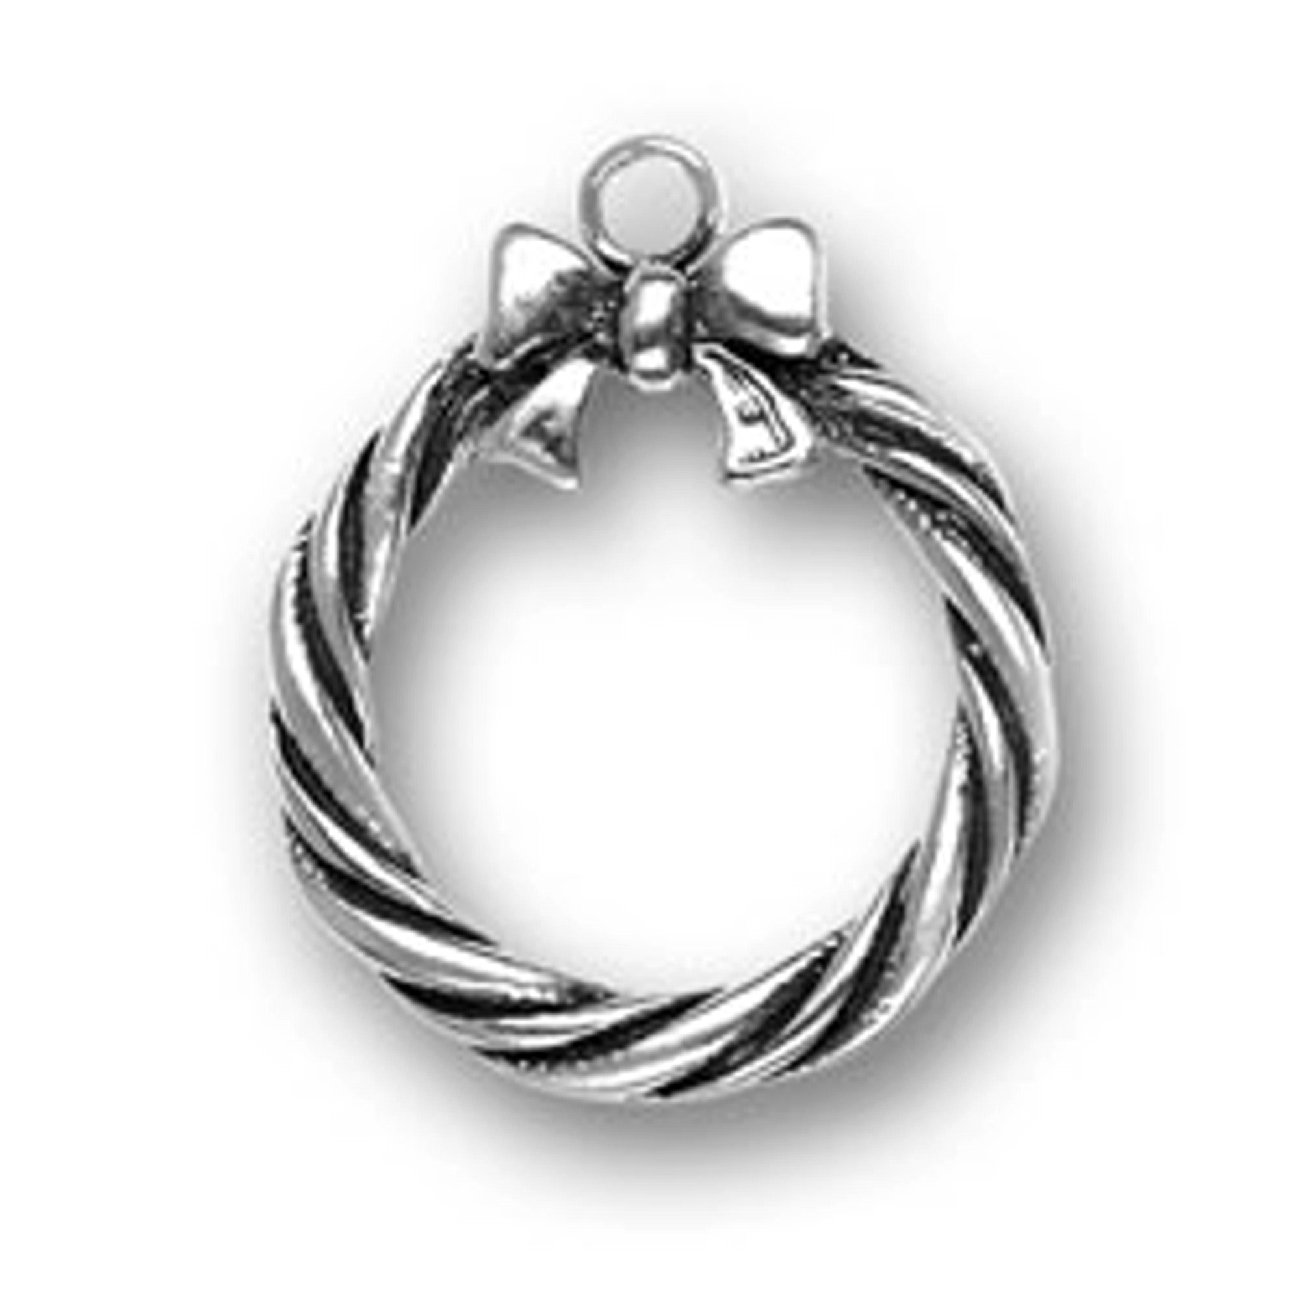 Sterling Silver 7 4.5mm Charm Bracelet With Attached 3D Christmas Twill Wreath With Bow Charm